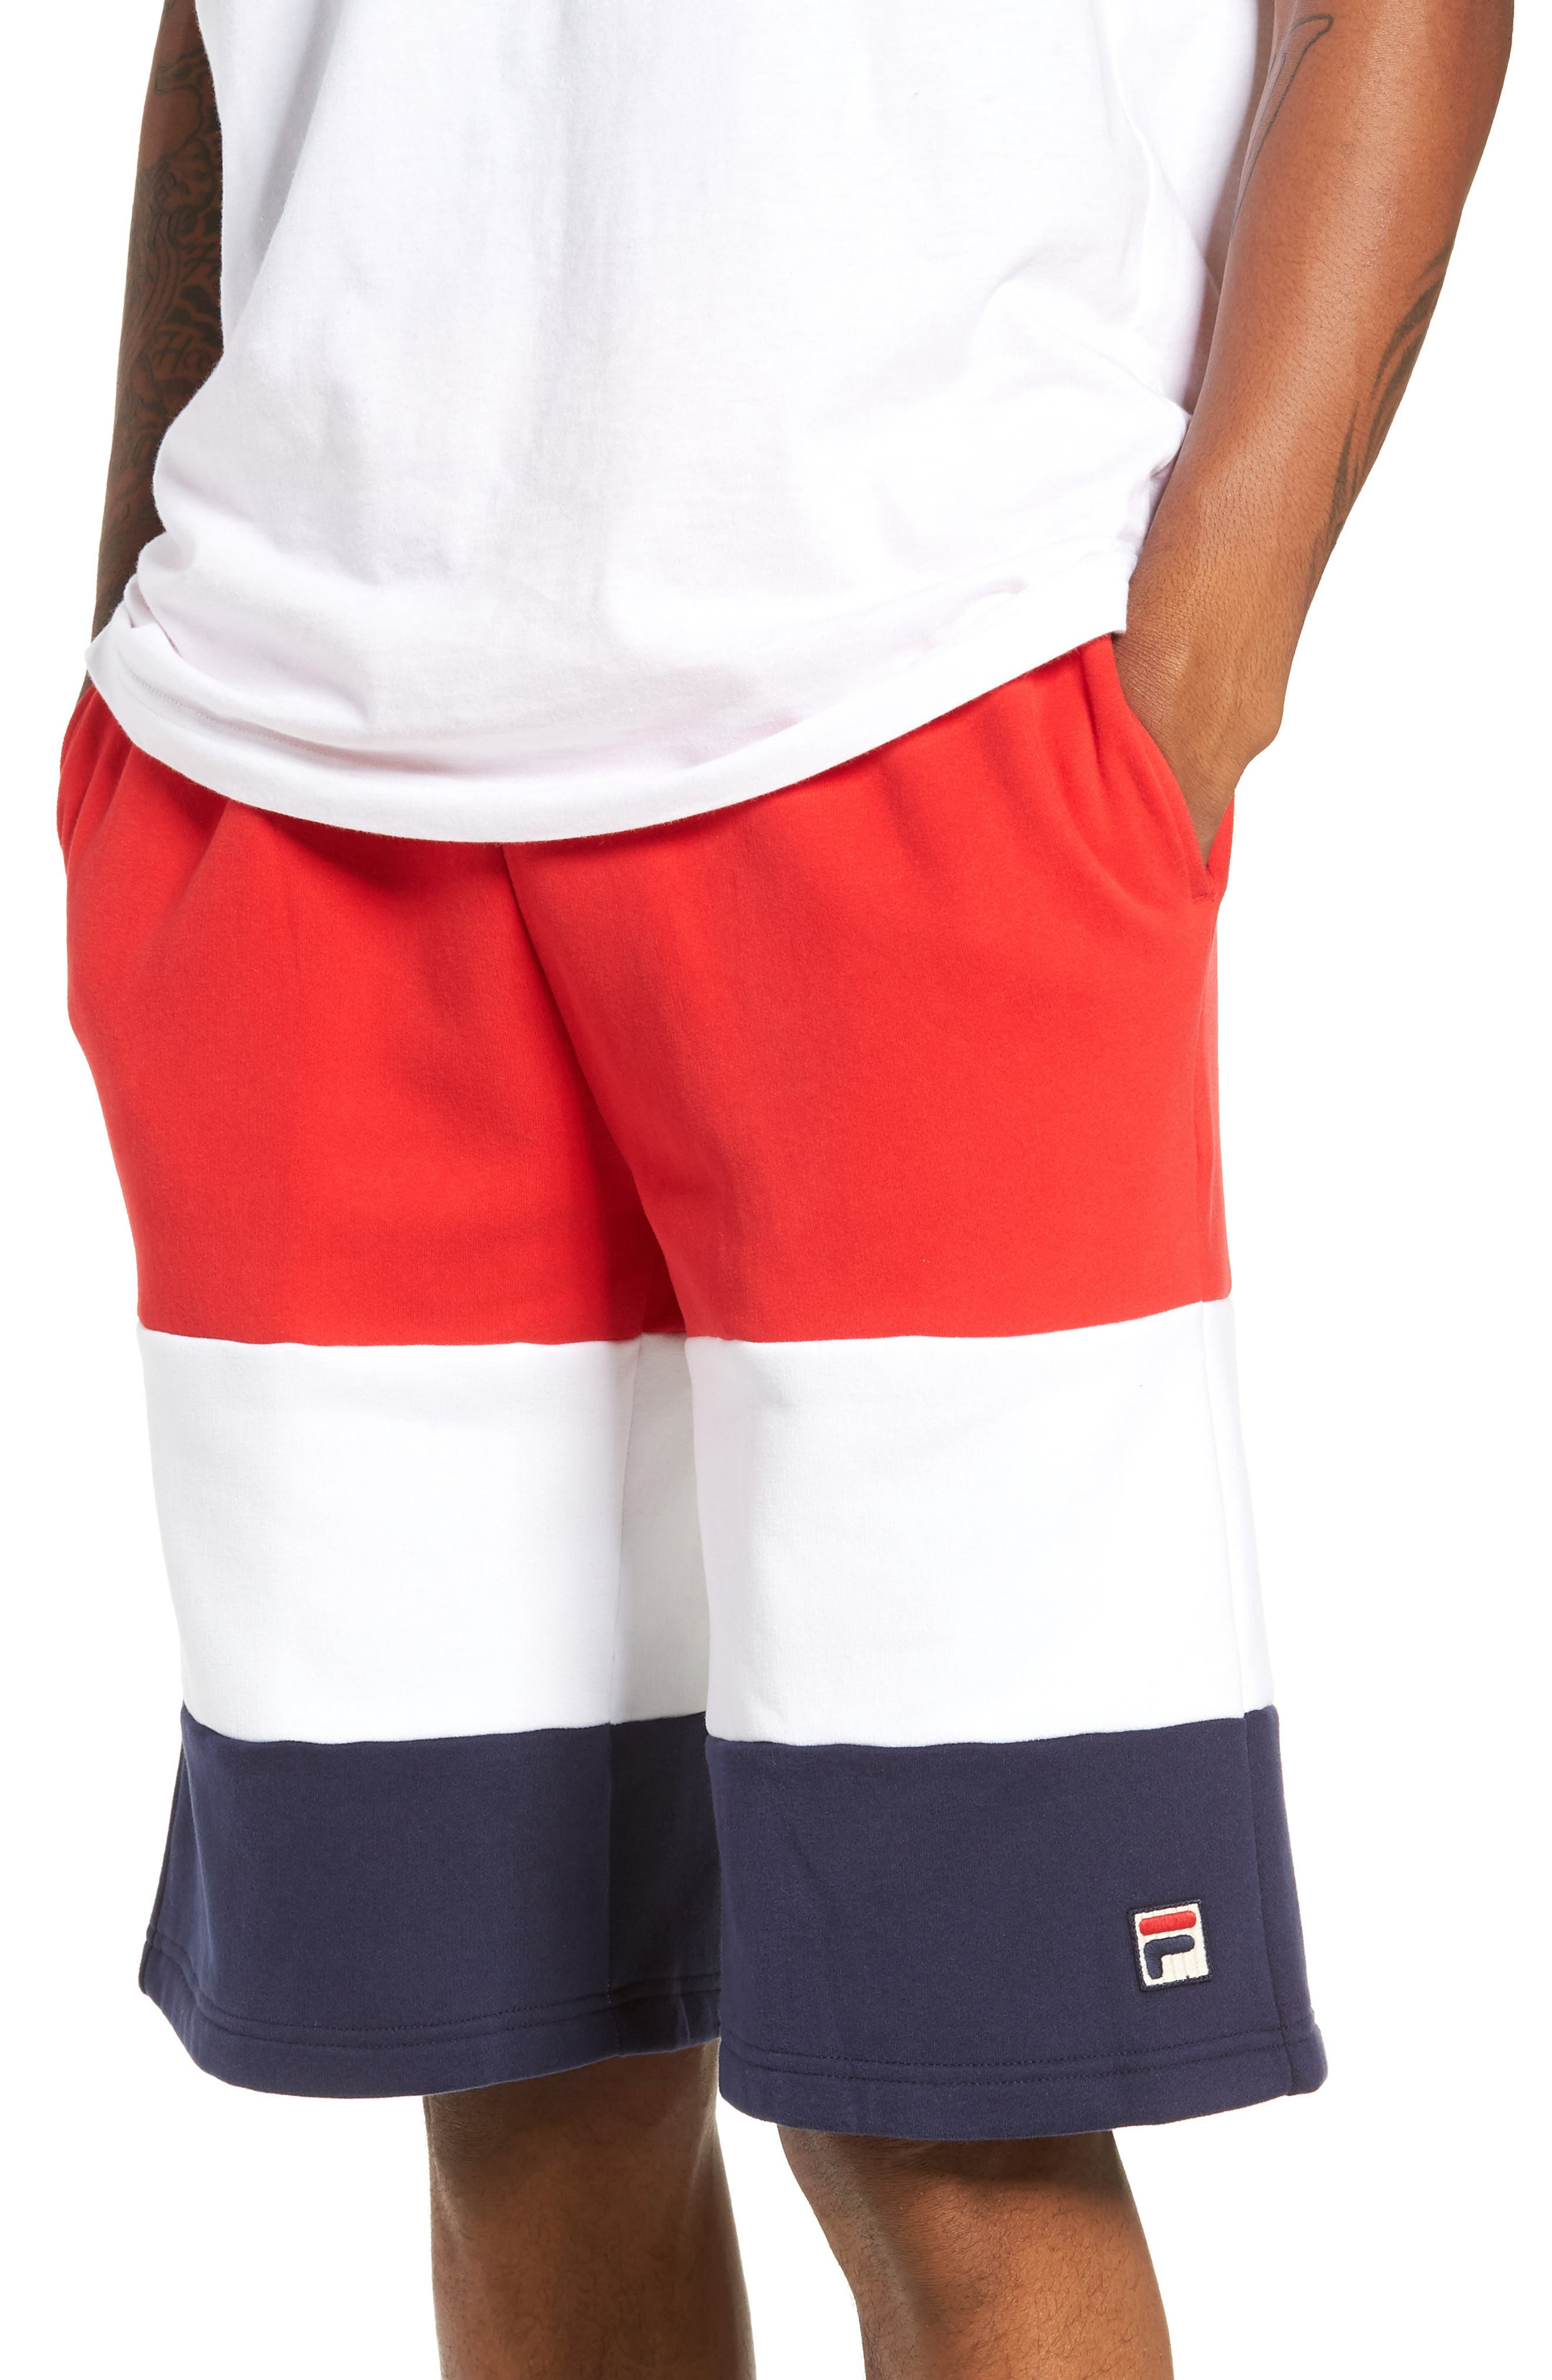 Alanzo Shorts,                         Main,                         color, CHINESE RED/ WHITE/ NAVY